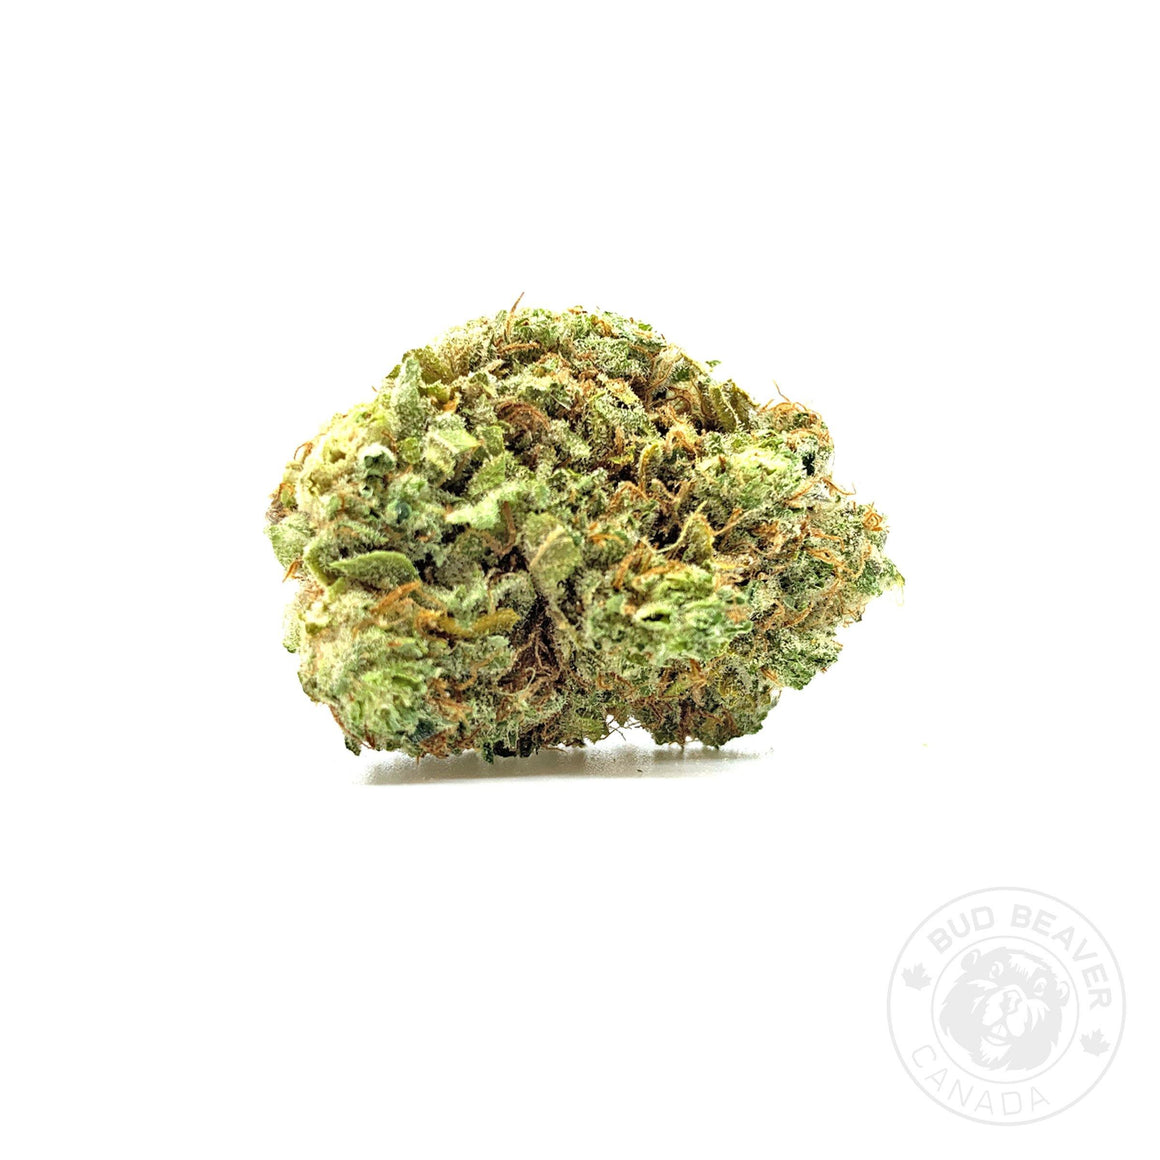 buy watermelon zkittlez cannabis online at bud beaver canada the best online dispensary in canada